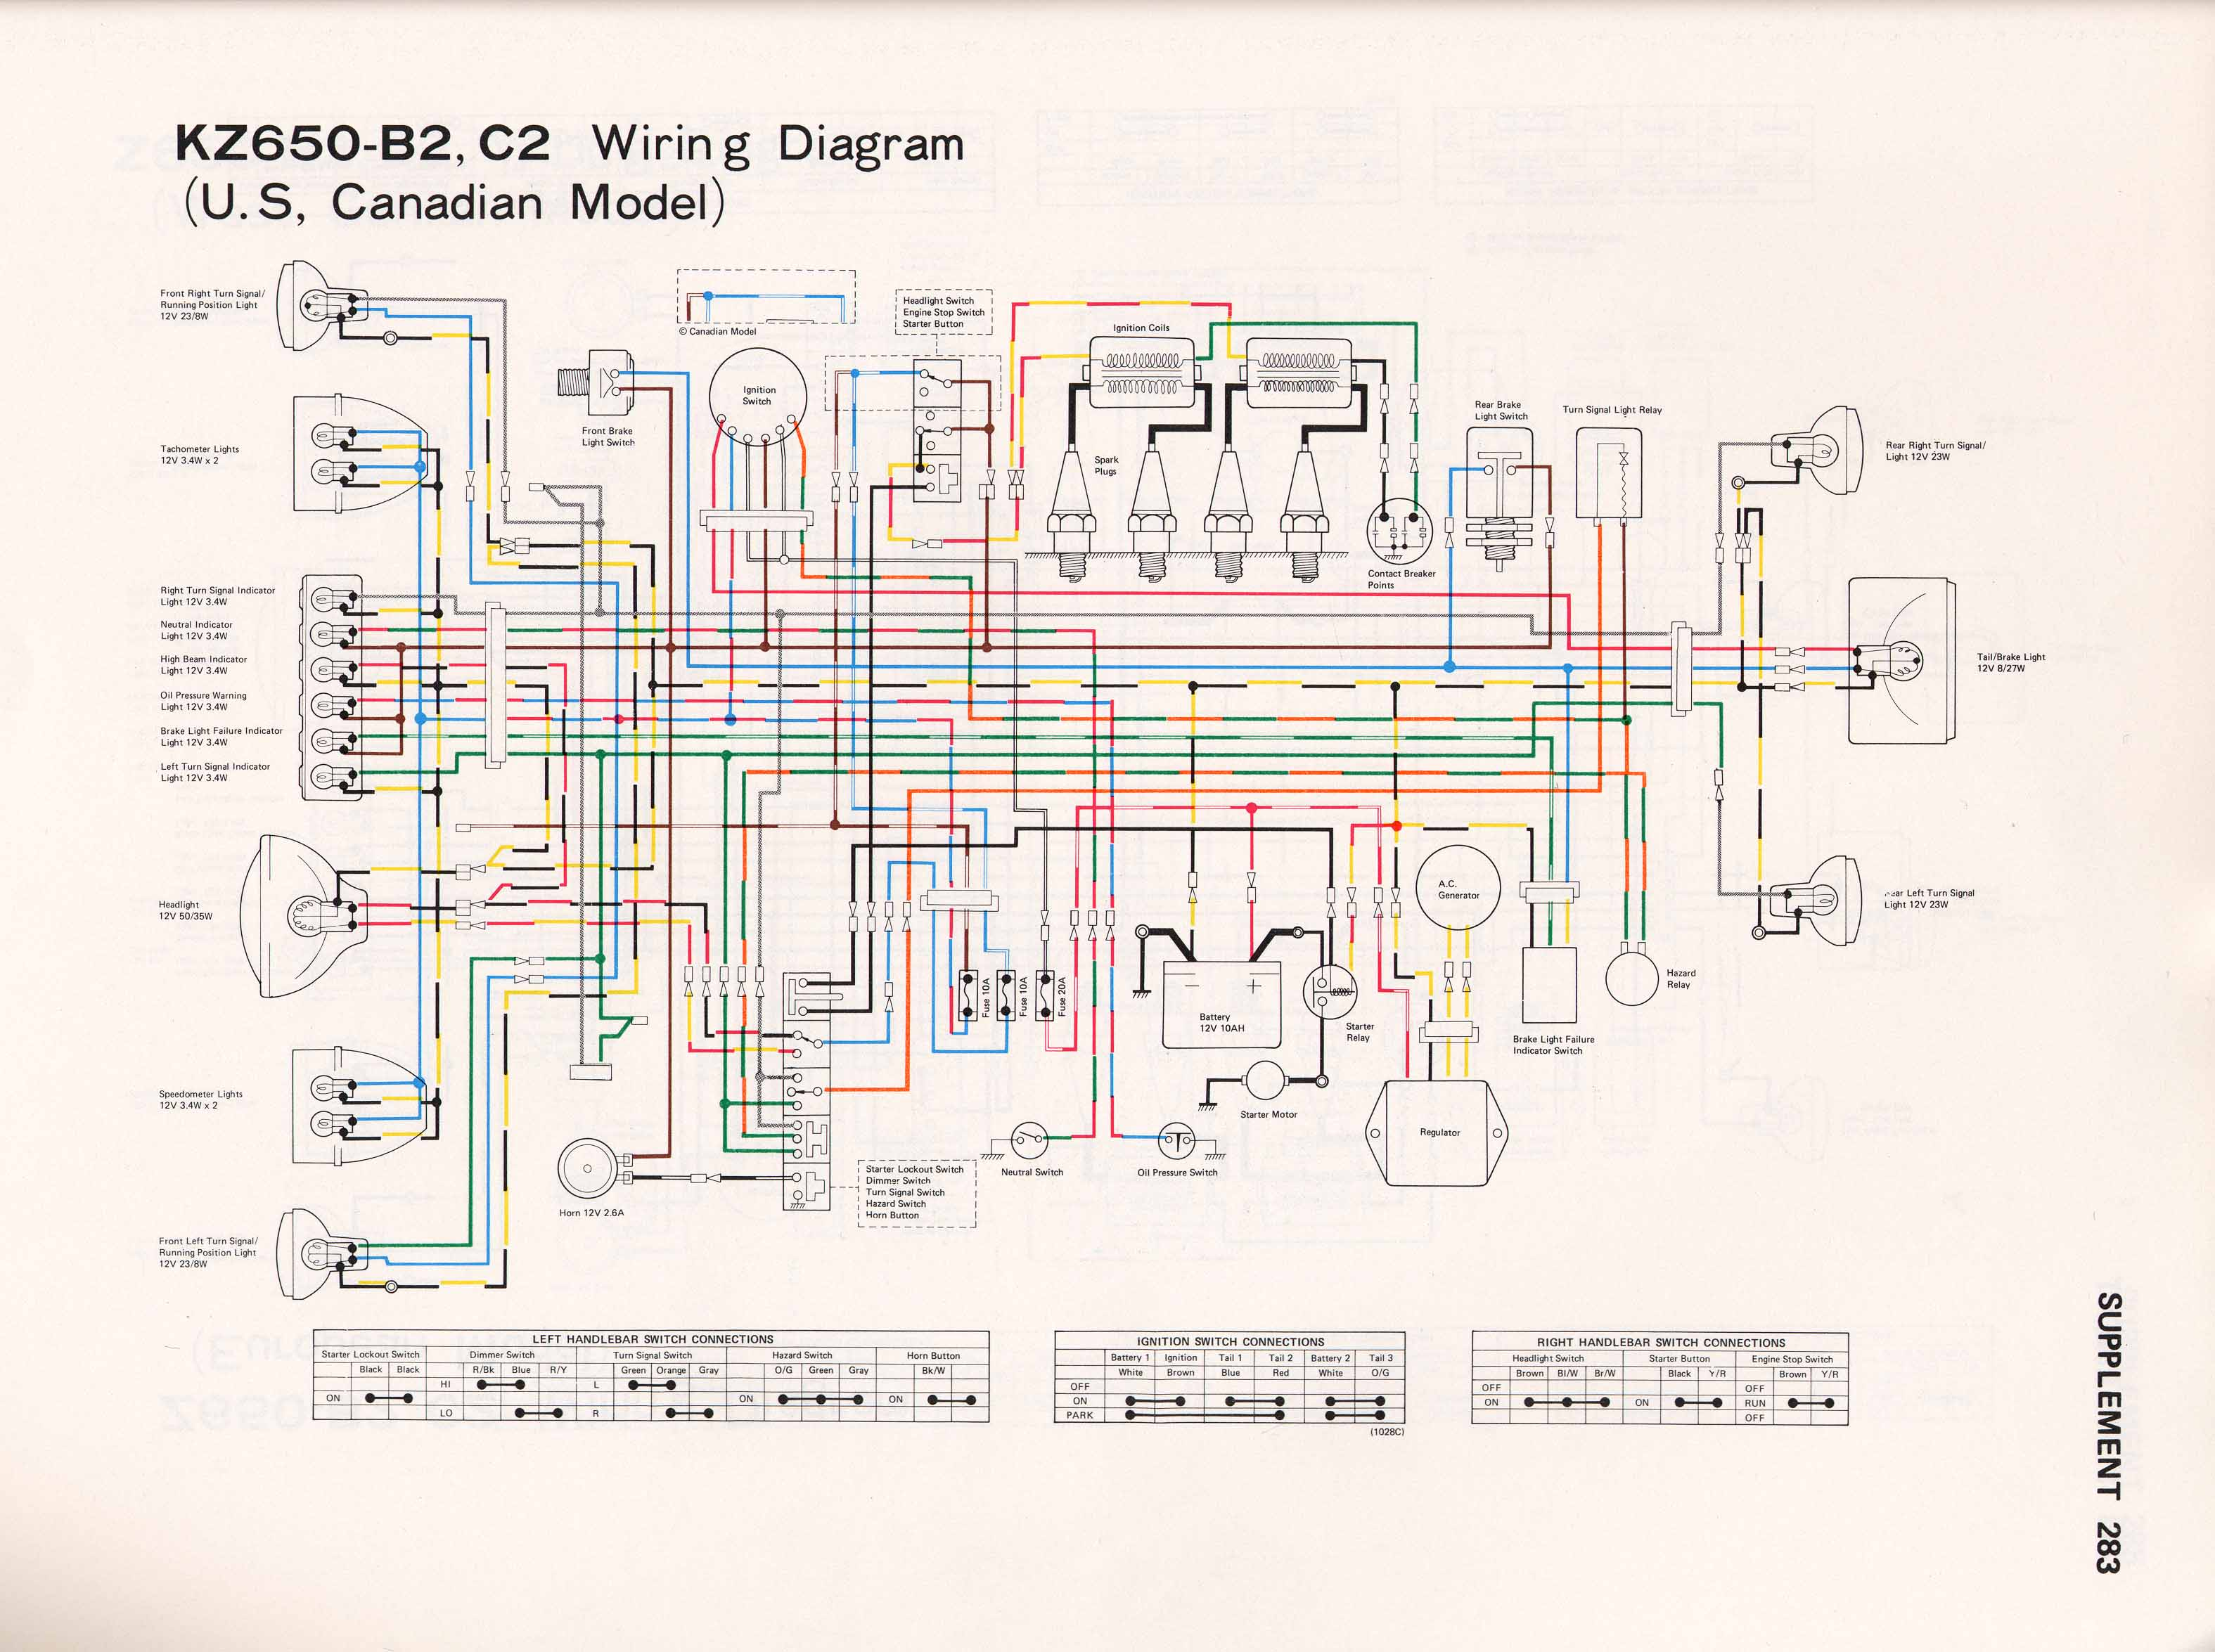 1975 kawasaki wiring diagram free - kawasaki workshop, owner & parts manuals pdf down ...